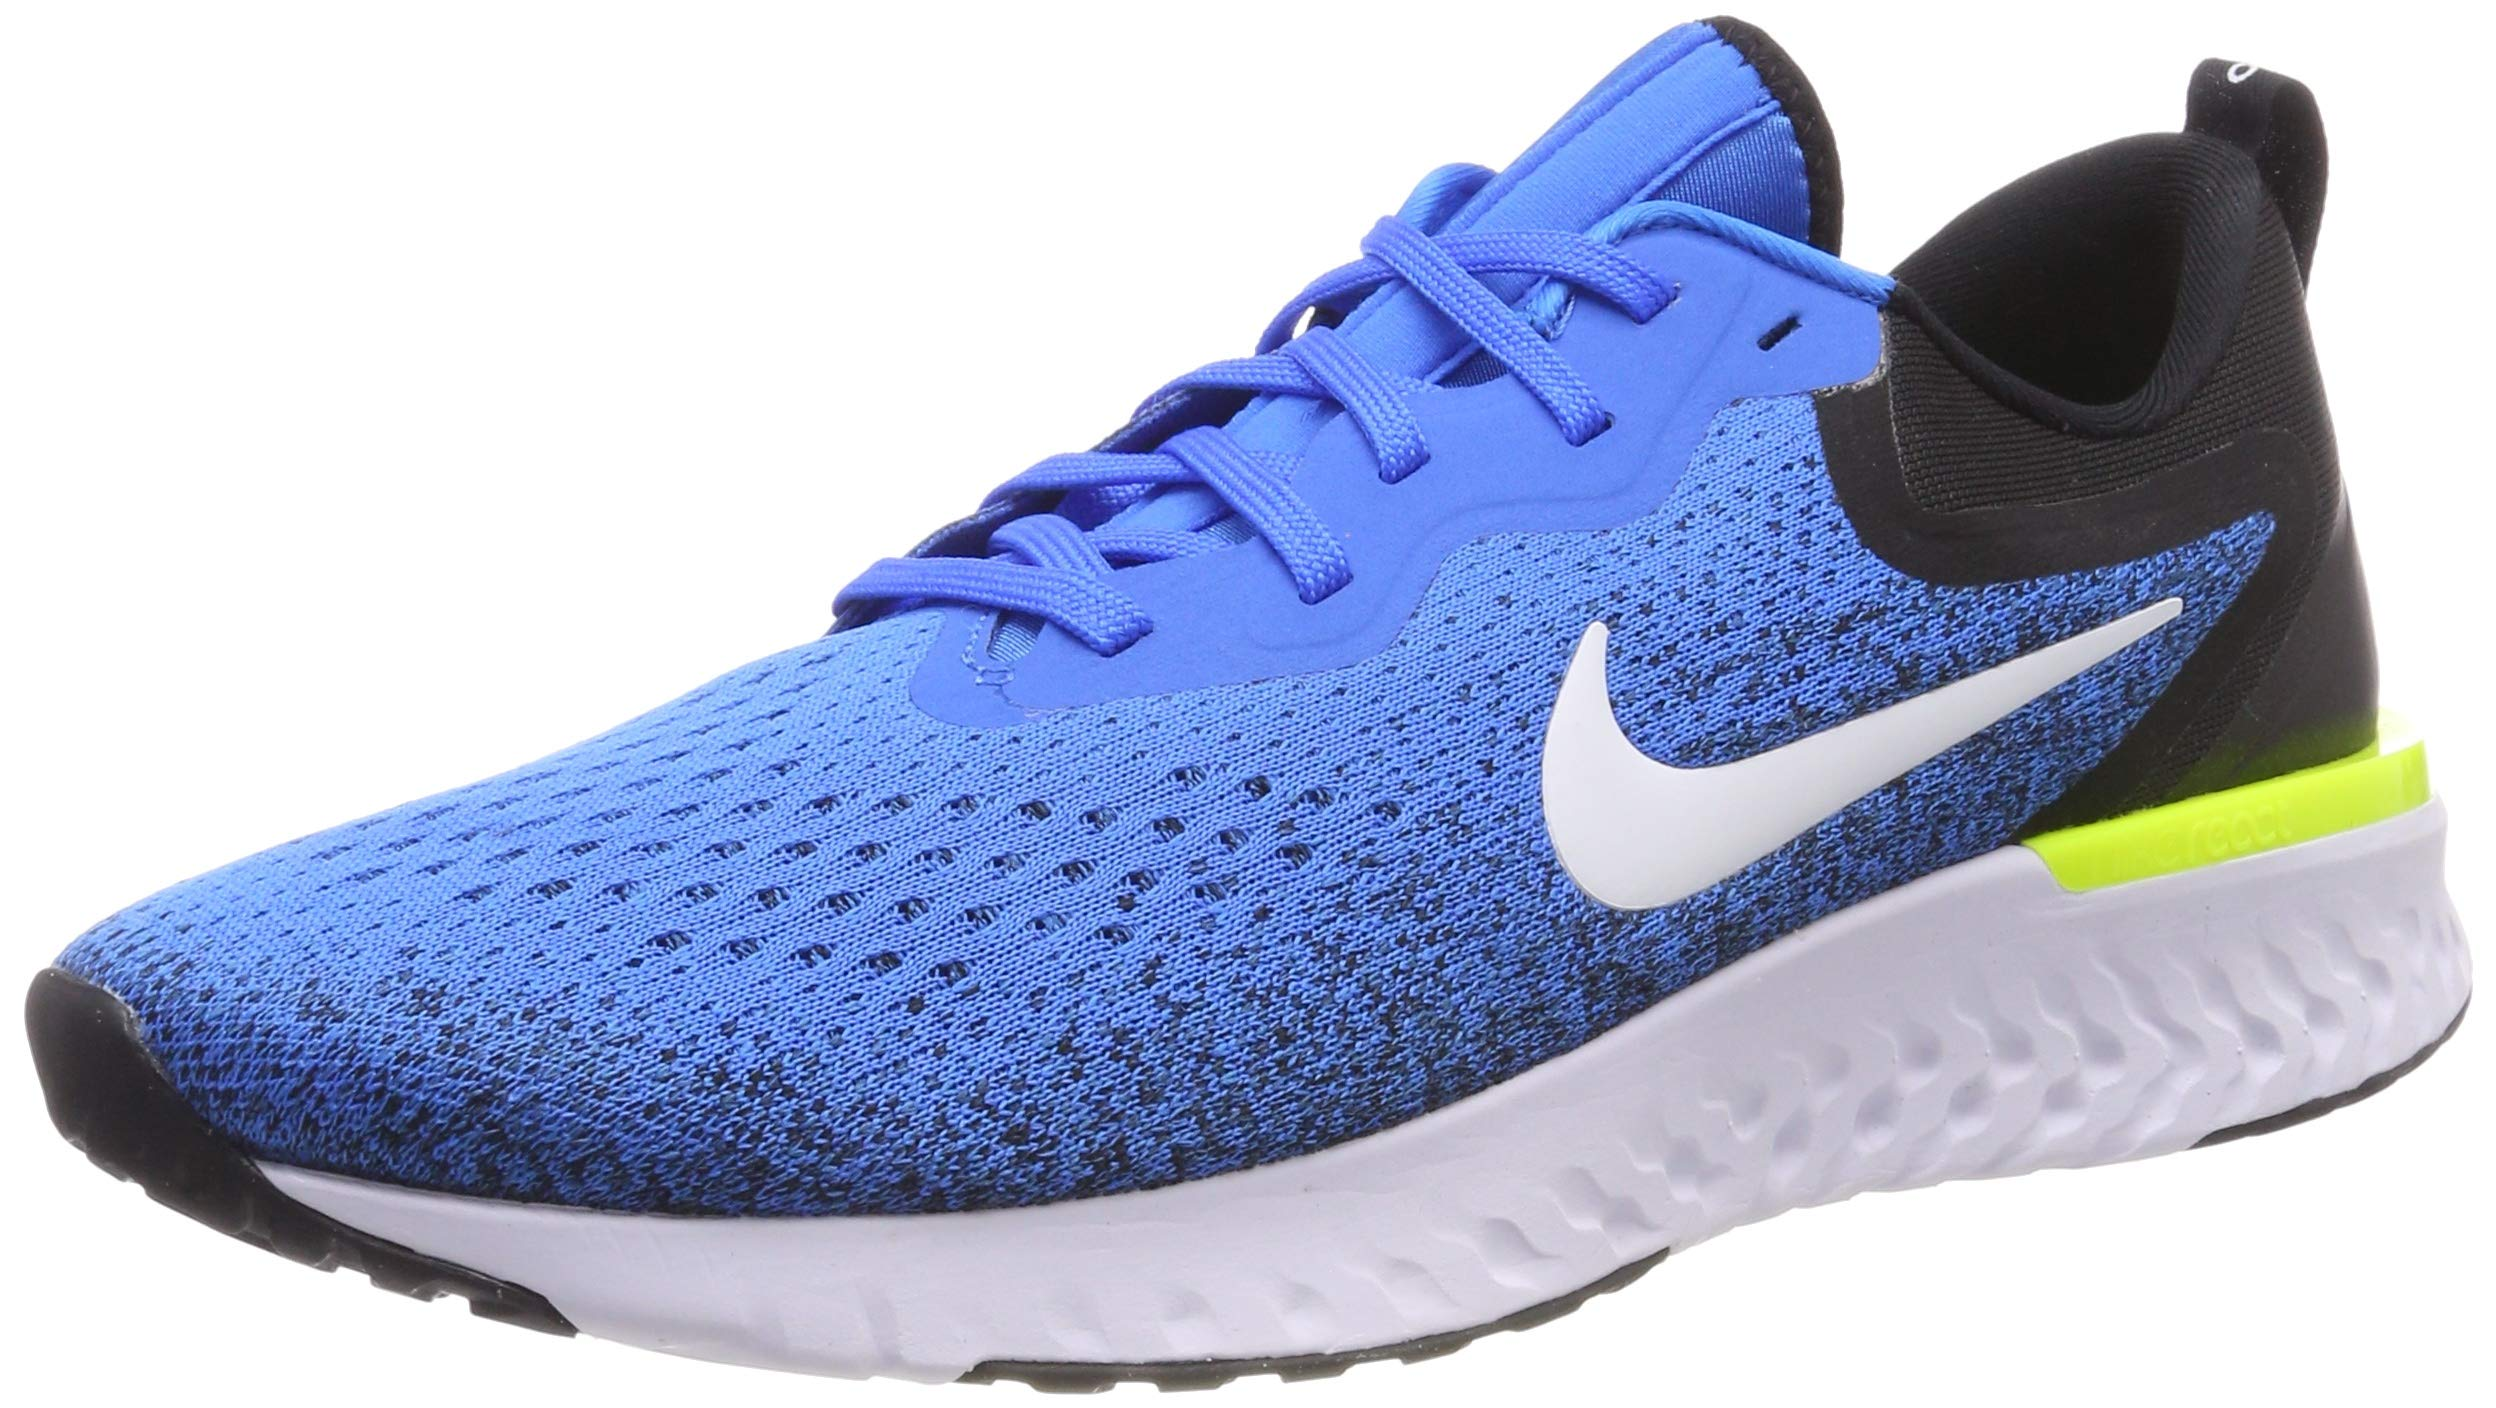 Nike Odyssey React Men's Running Shoe Green Abyss/Volt-Blue Force-White 7.5 by Nike (Image #1)